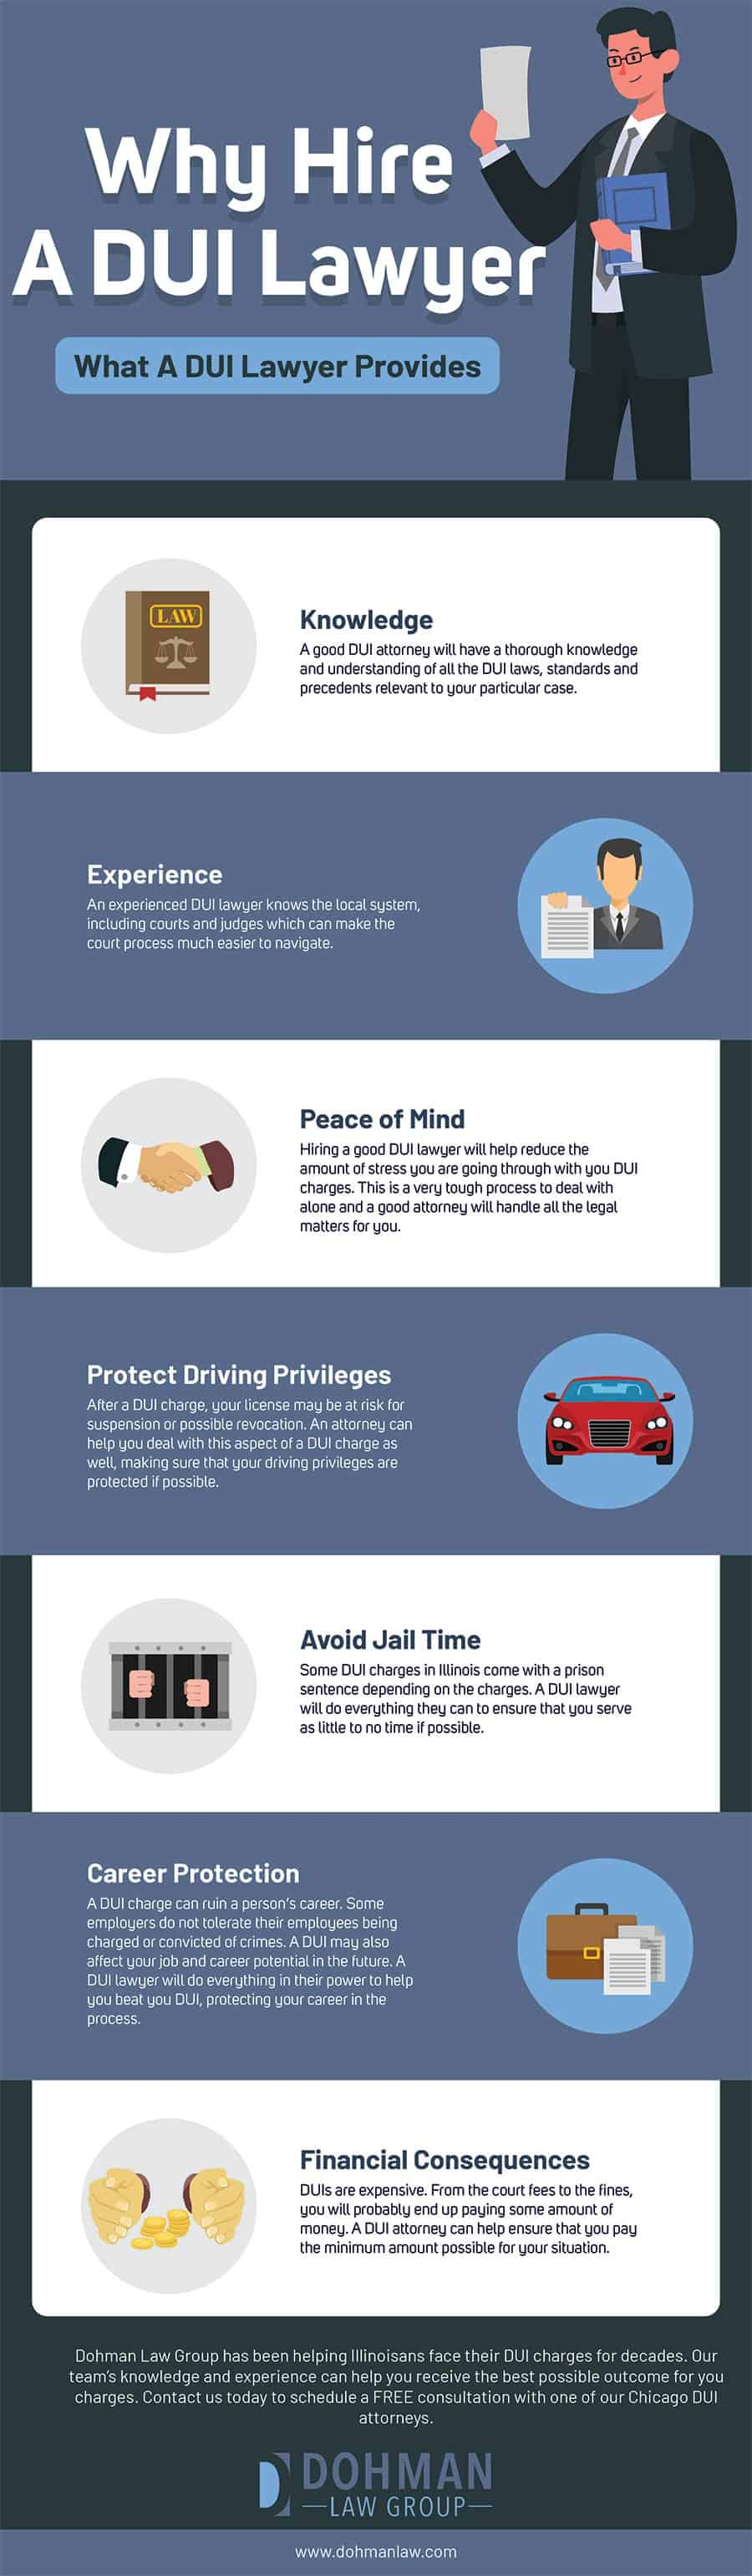 Rolling Meadows DUI Lawyer - Infographic